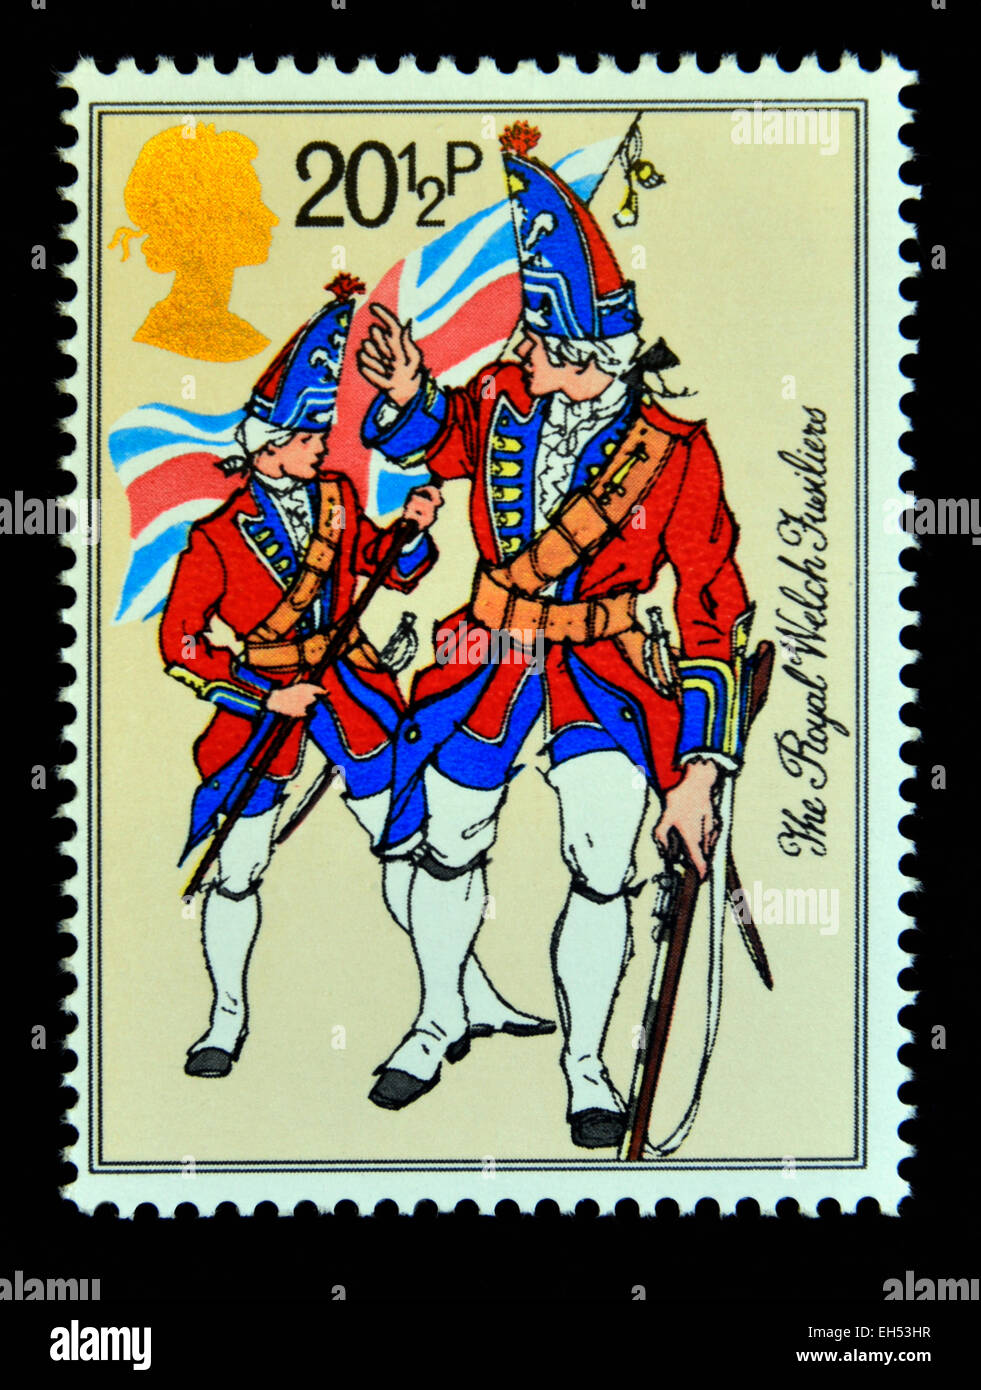 Postage stamp. Great Britain. Queen Elizabeth II. 1983. British Army Uniforms. The Royal Welch Fusiliers. - Stock Image